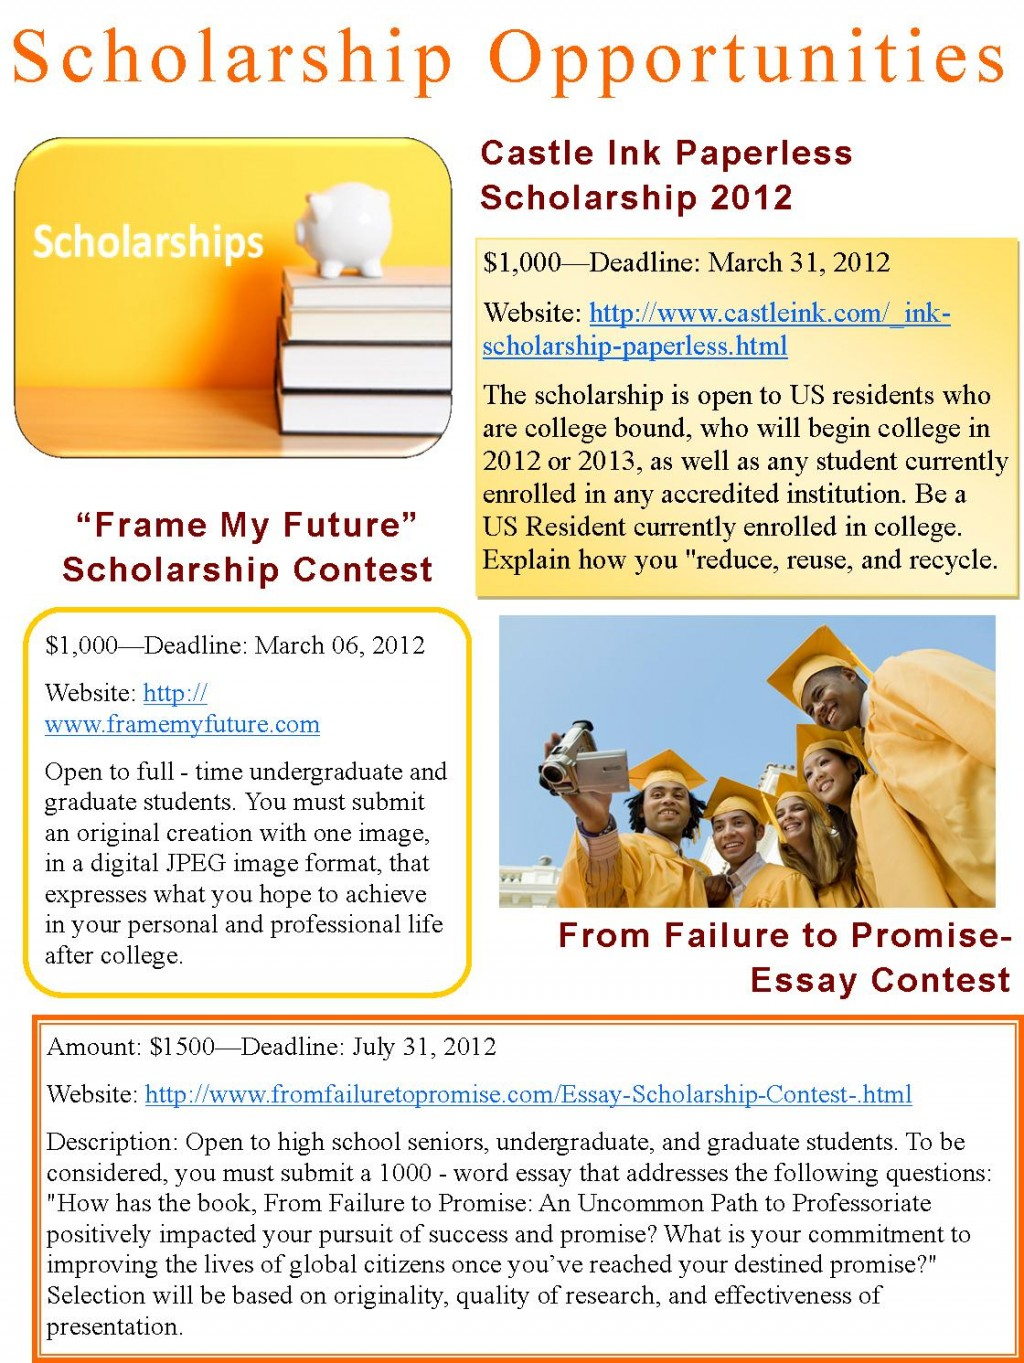 005 Essay Example From Failure To Promise Contest Unique Large